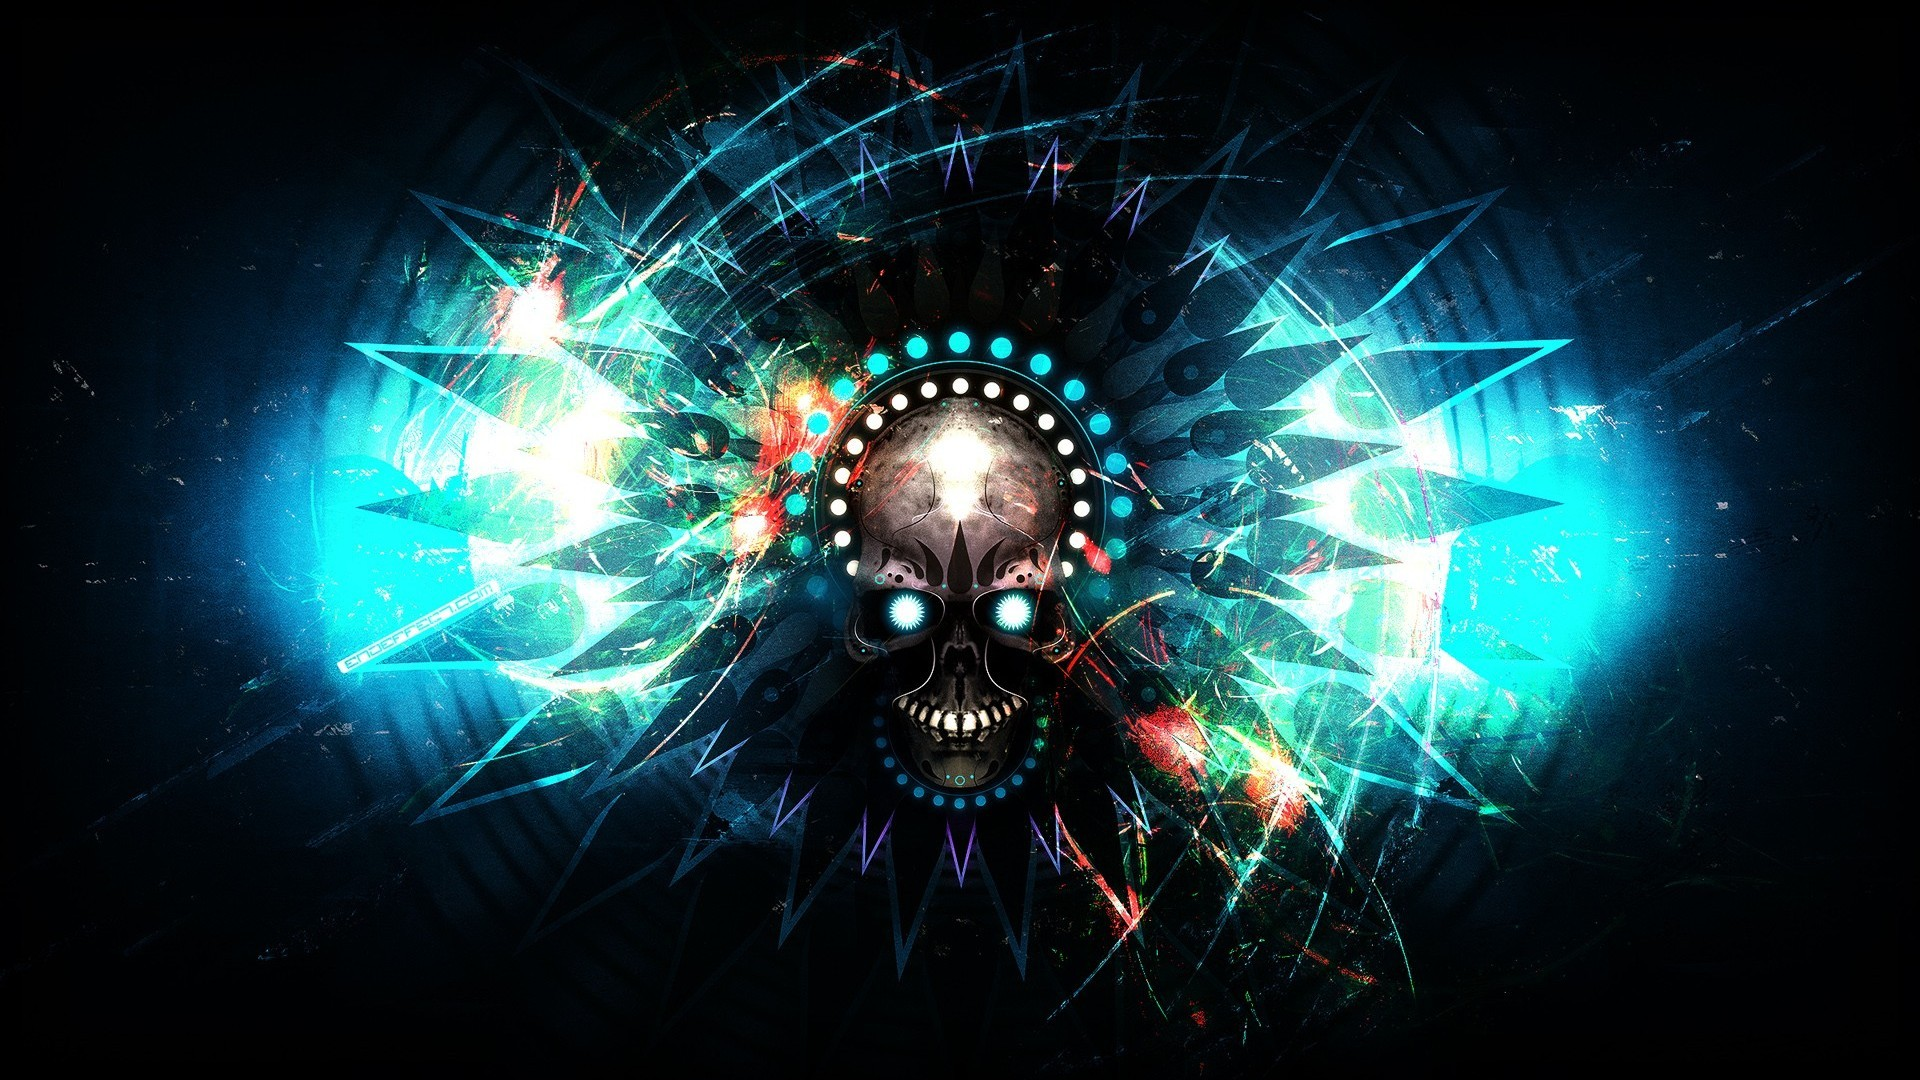 Dubstep Background 1 Download Free Cool Wallpapers For Desktop And